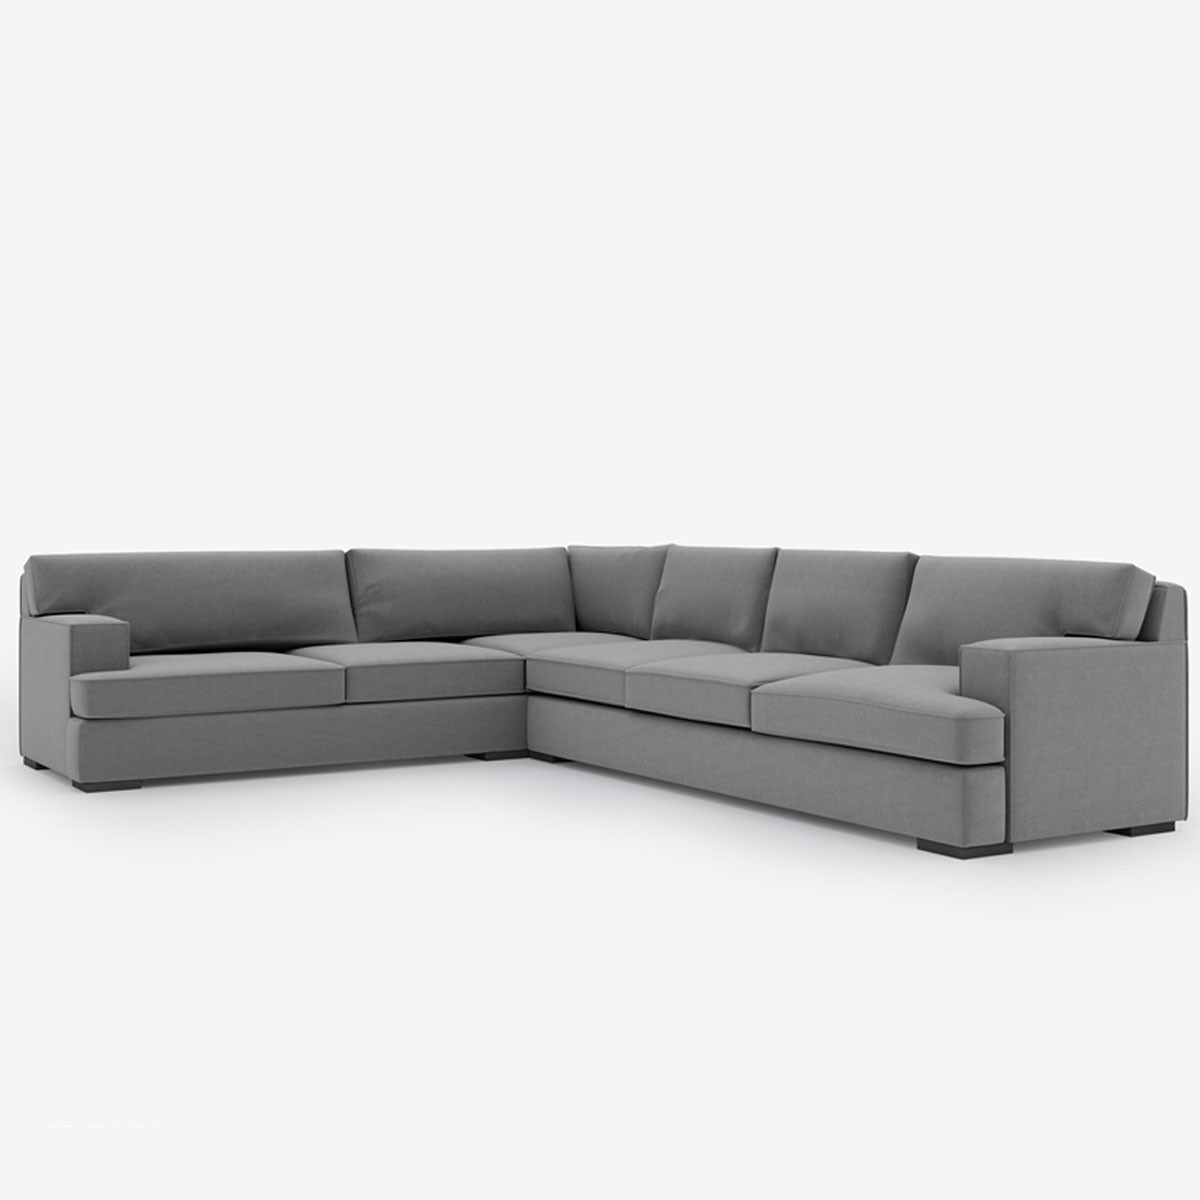 Image shows Extra Large Urban Corner Sofa – 5 Seater in City Herringbone Silver Grey